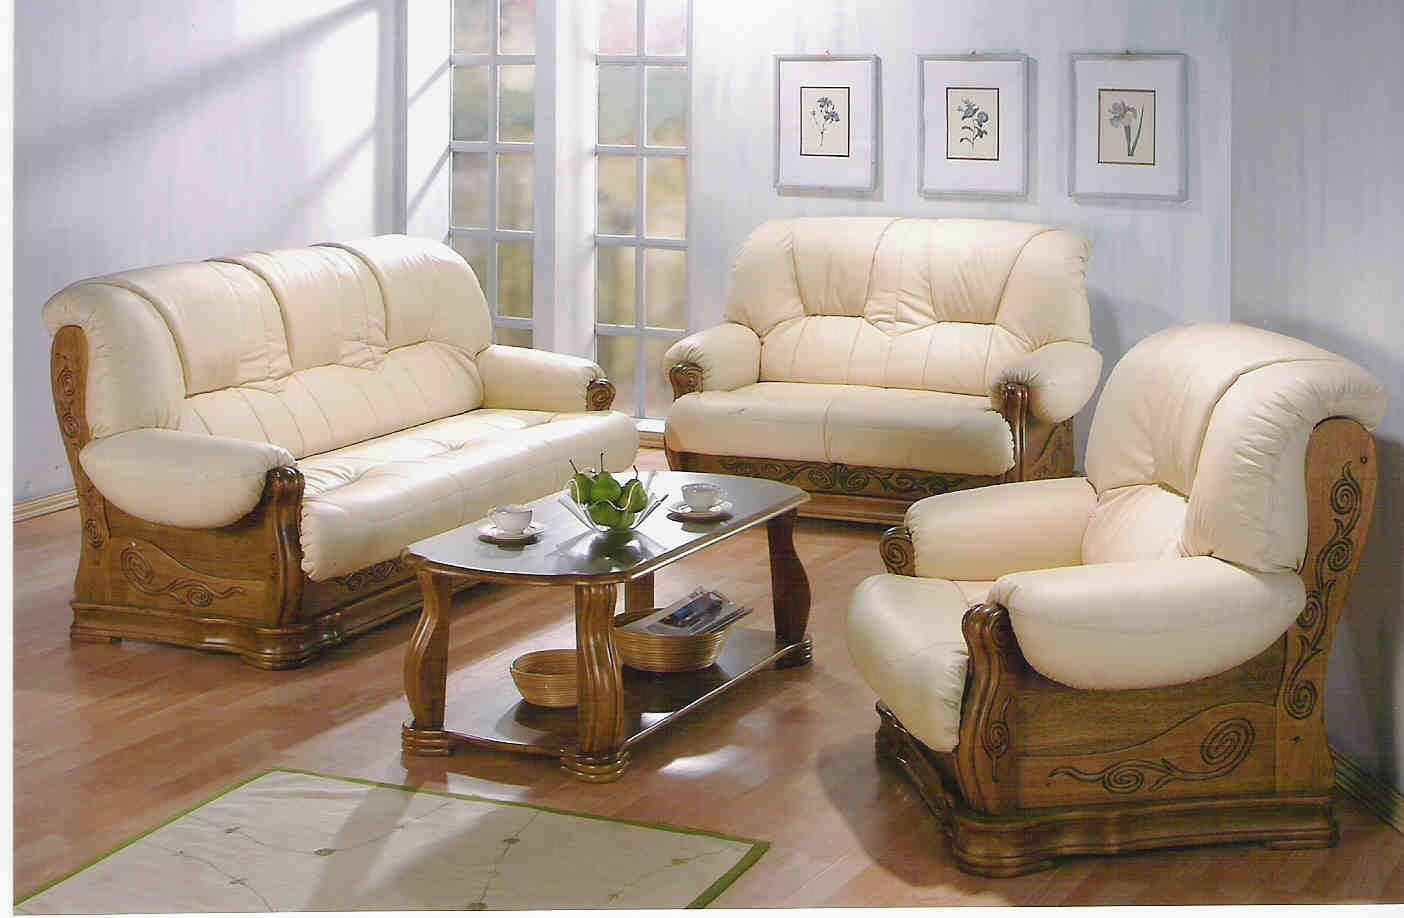 Furniture Sofa Set With Inspiration Gallery 17048 | Kengire Within Ken Sofa Sets (Image 15 of 20)